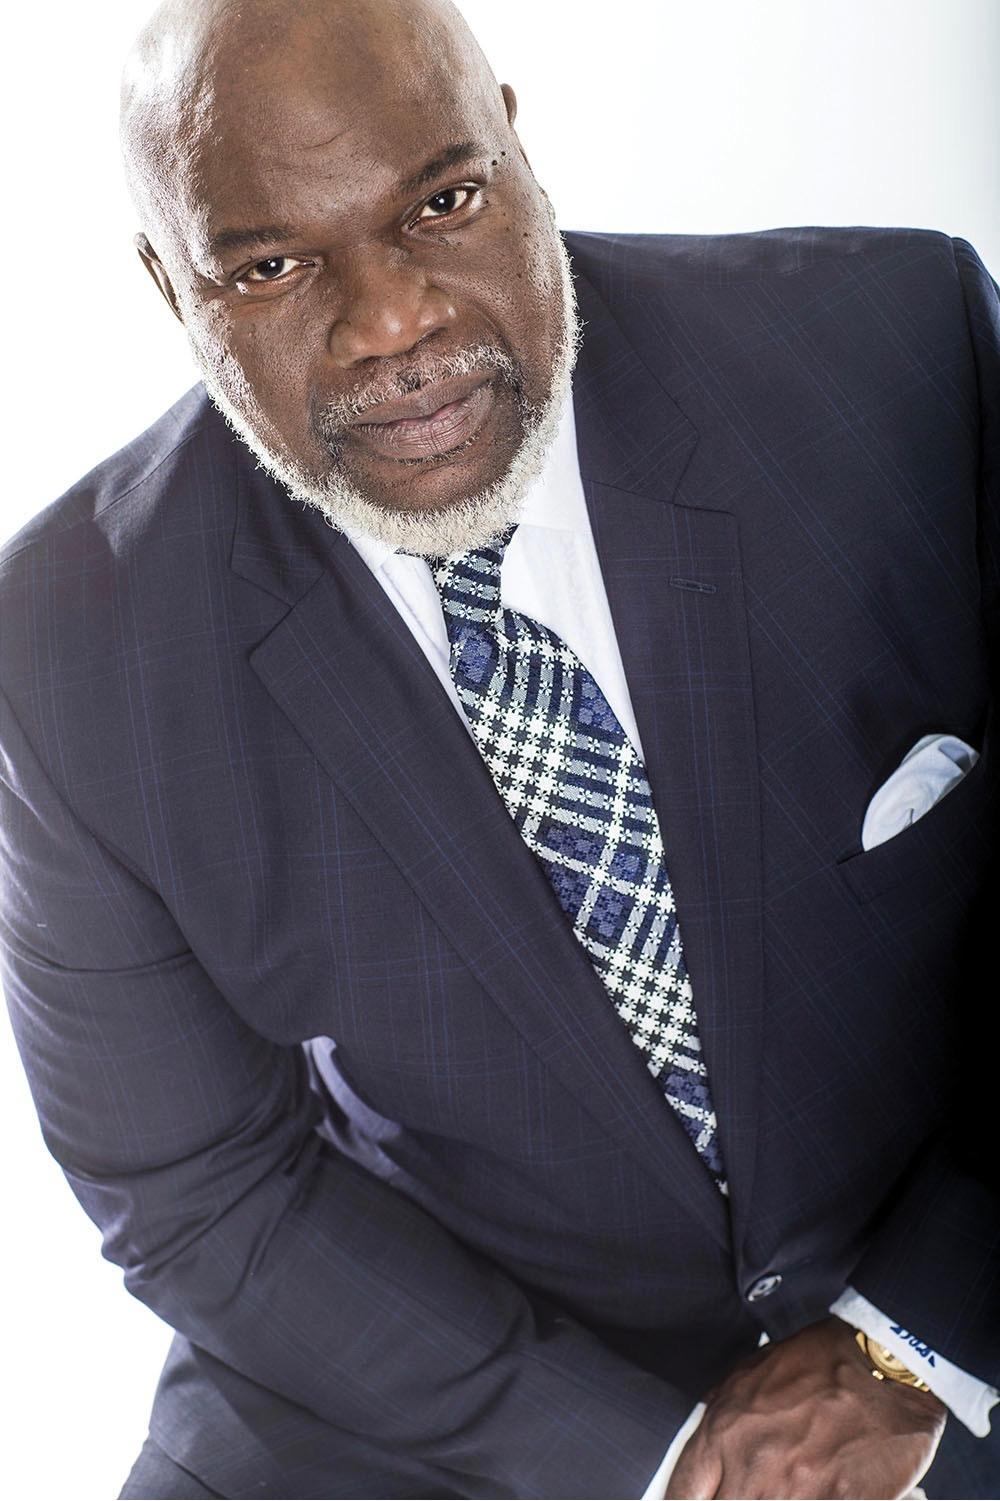 Black Book Car >> Soar! With Bishop T.D. Jakes | KUT